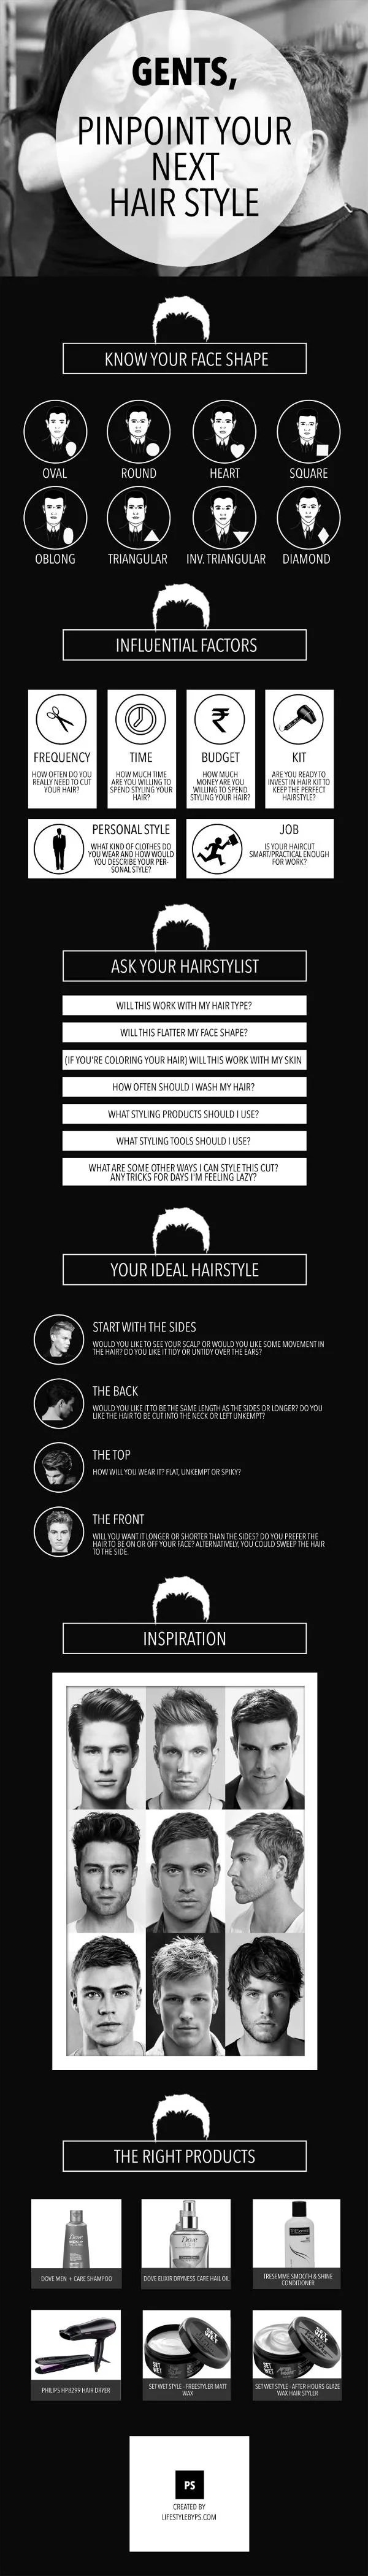 picking-a-new-mens-hairstyle